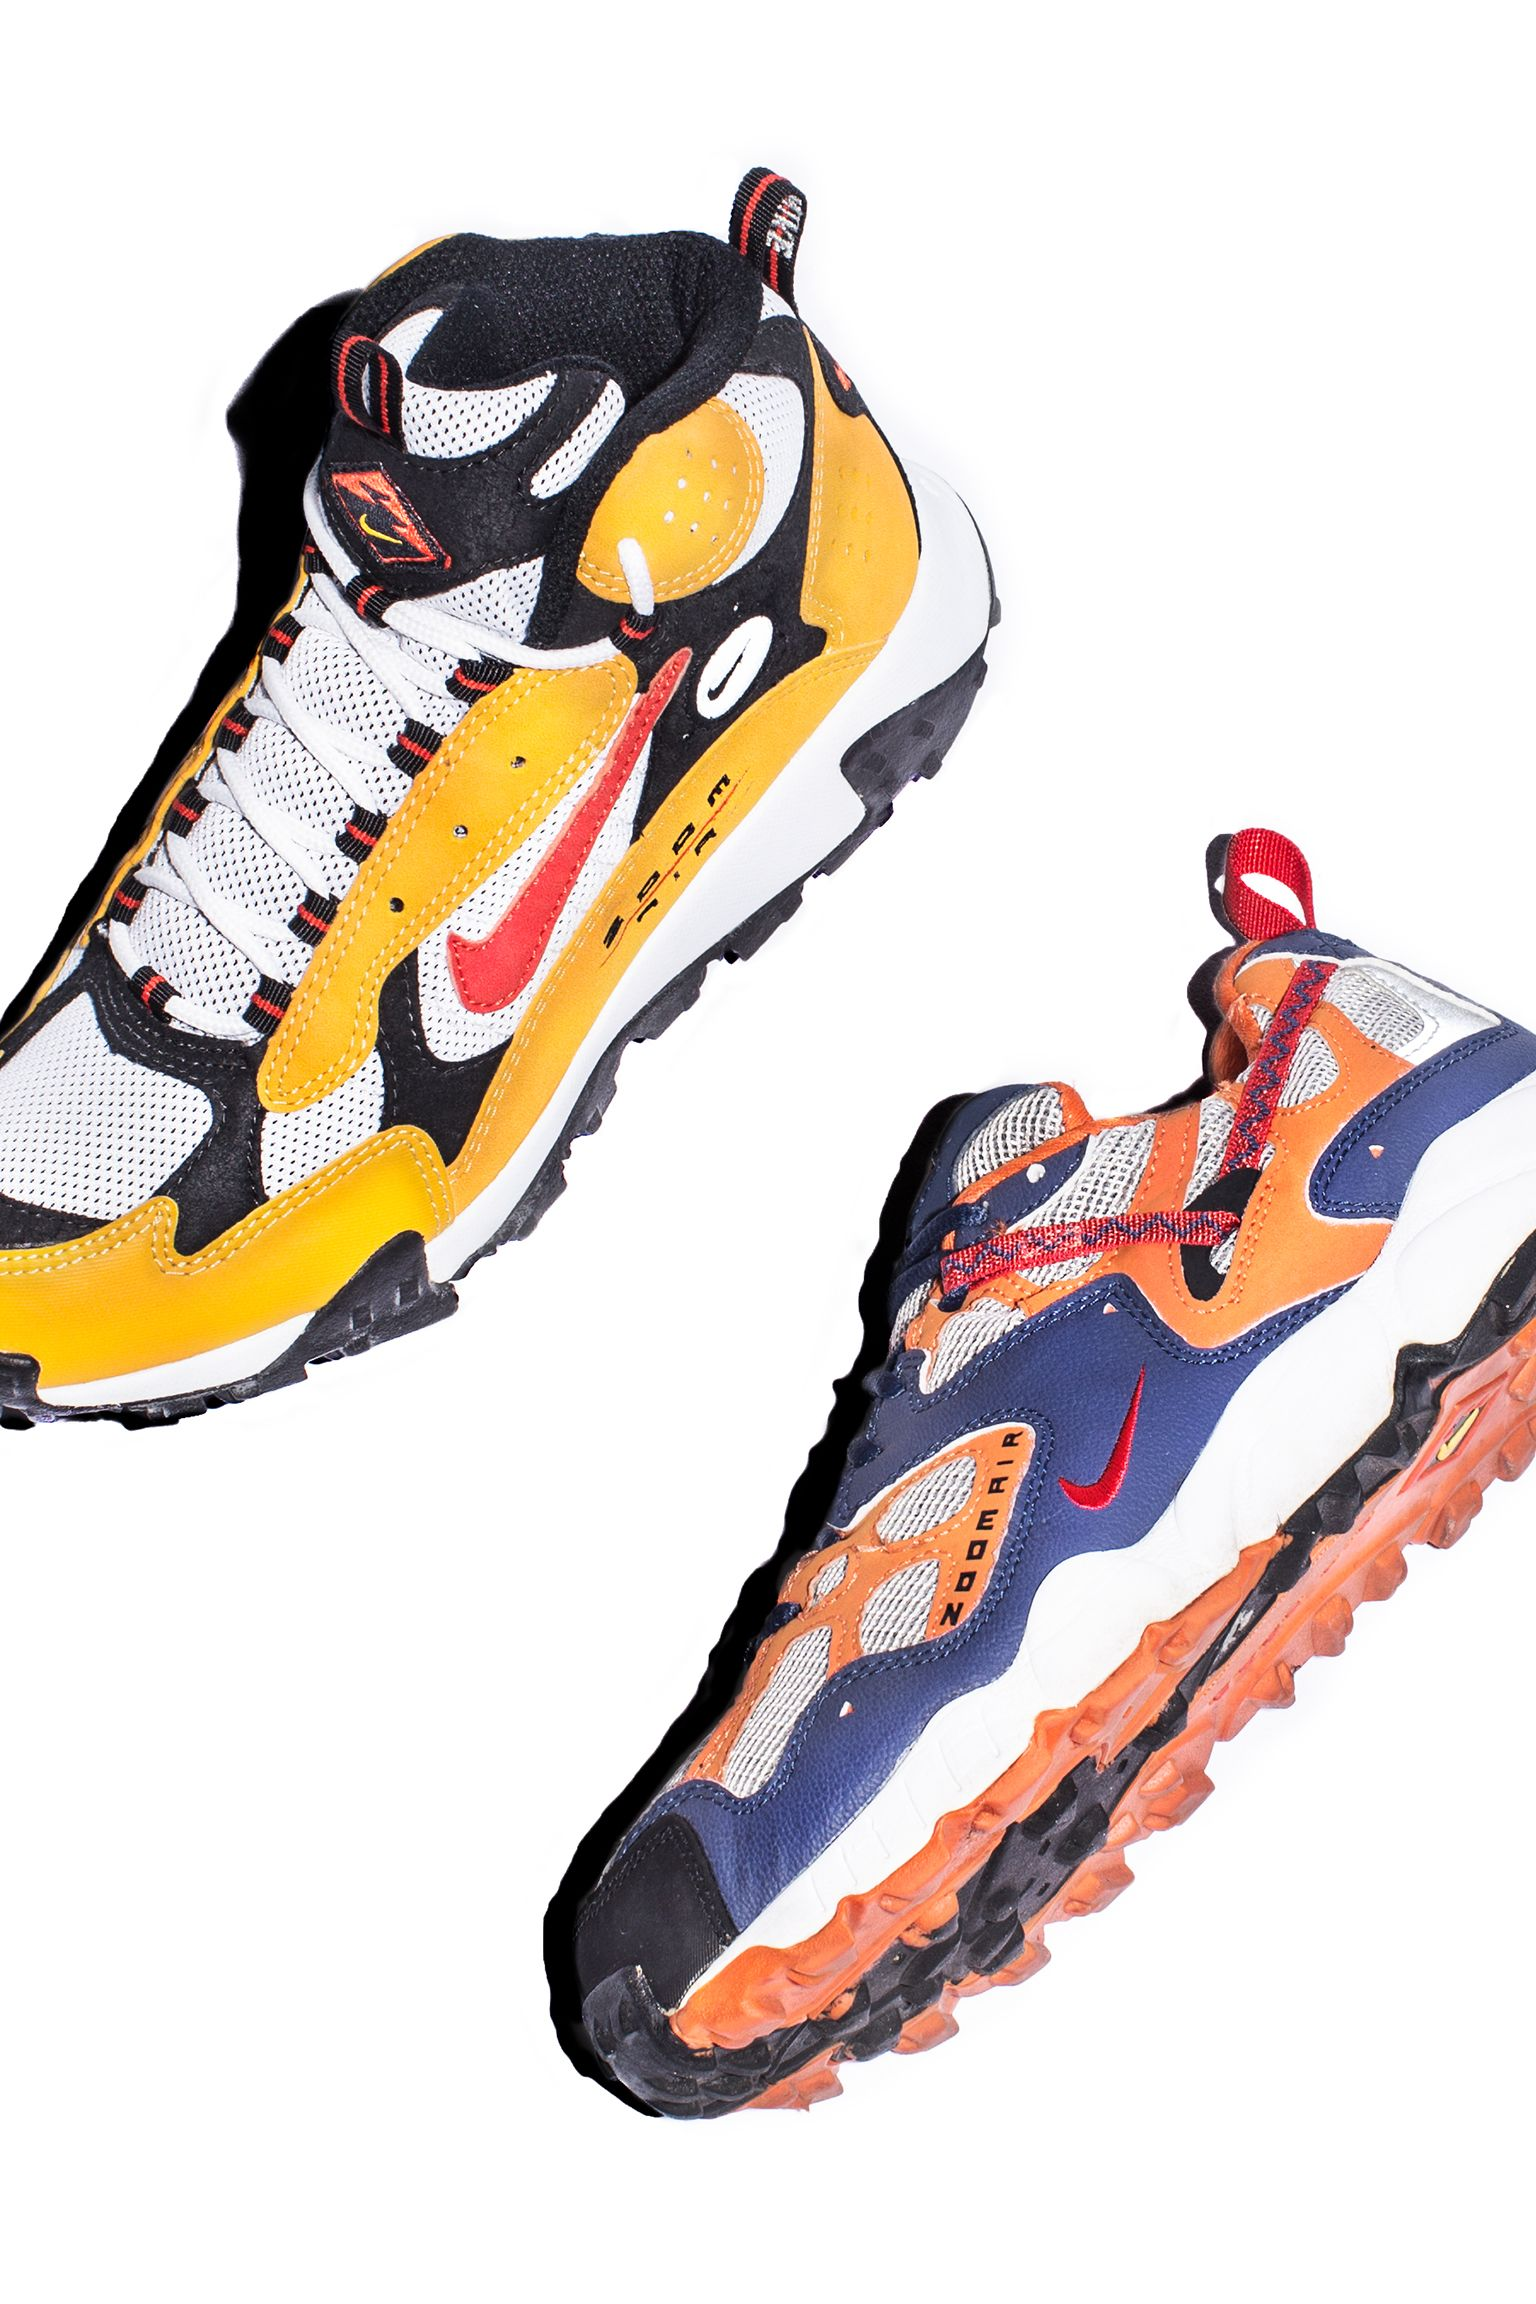 e32165ebcf901 ... clearance these shoes roughly fit into whats known as nikes terra line  of trail shoes which